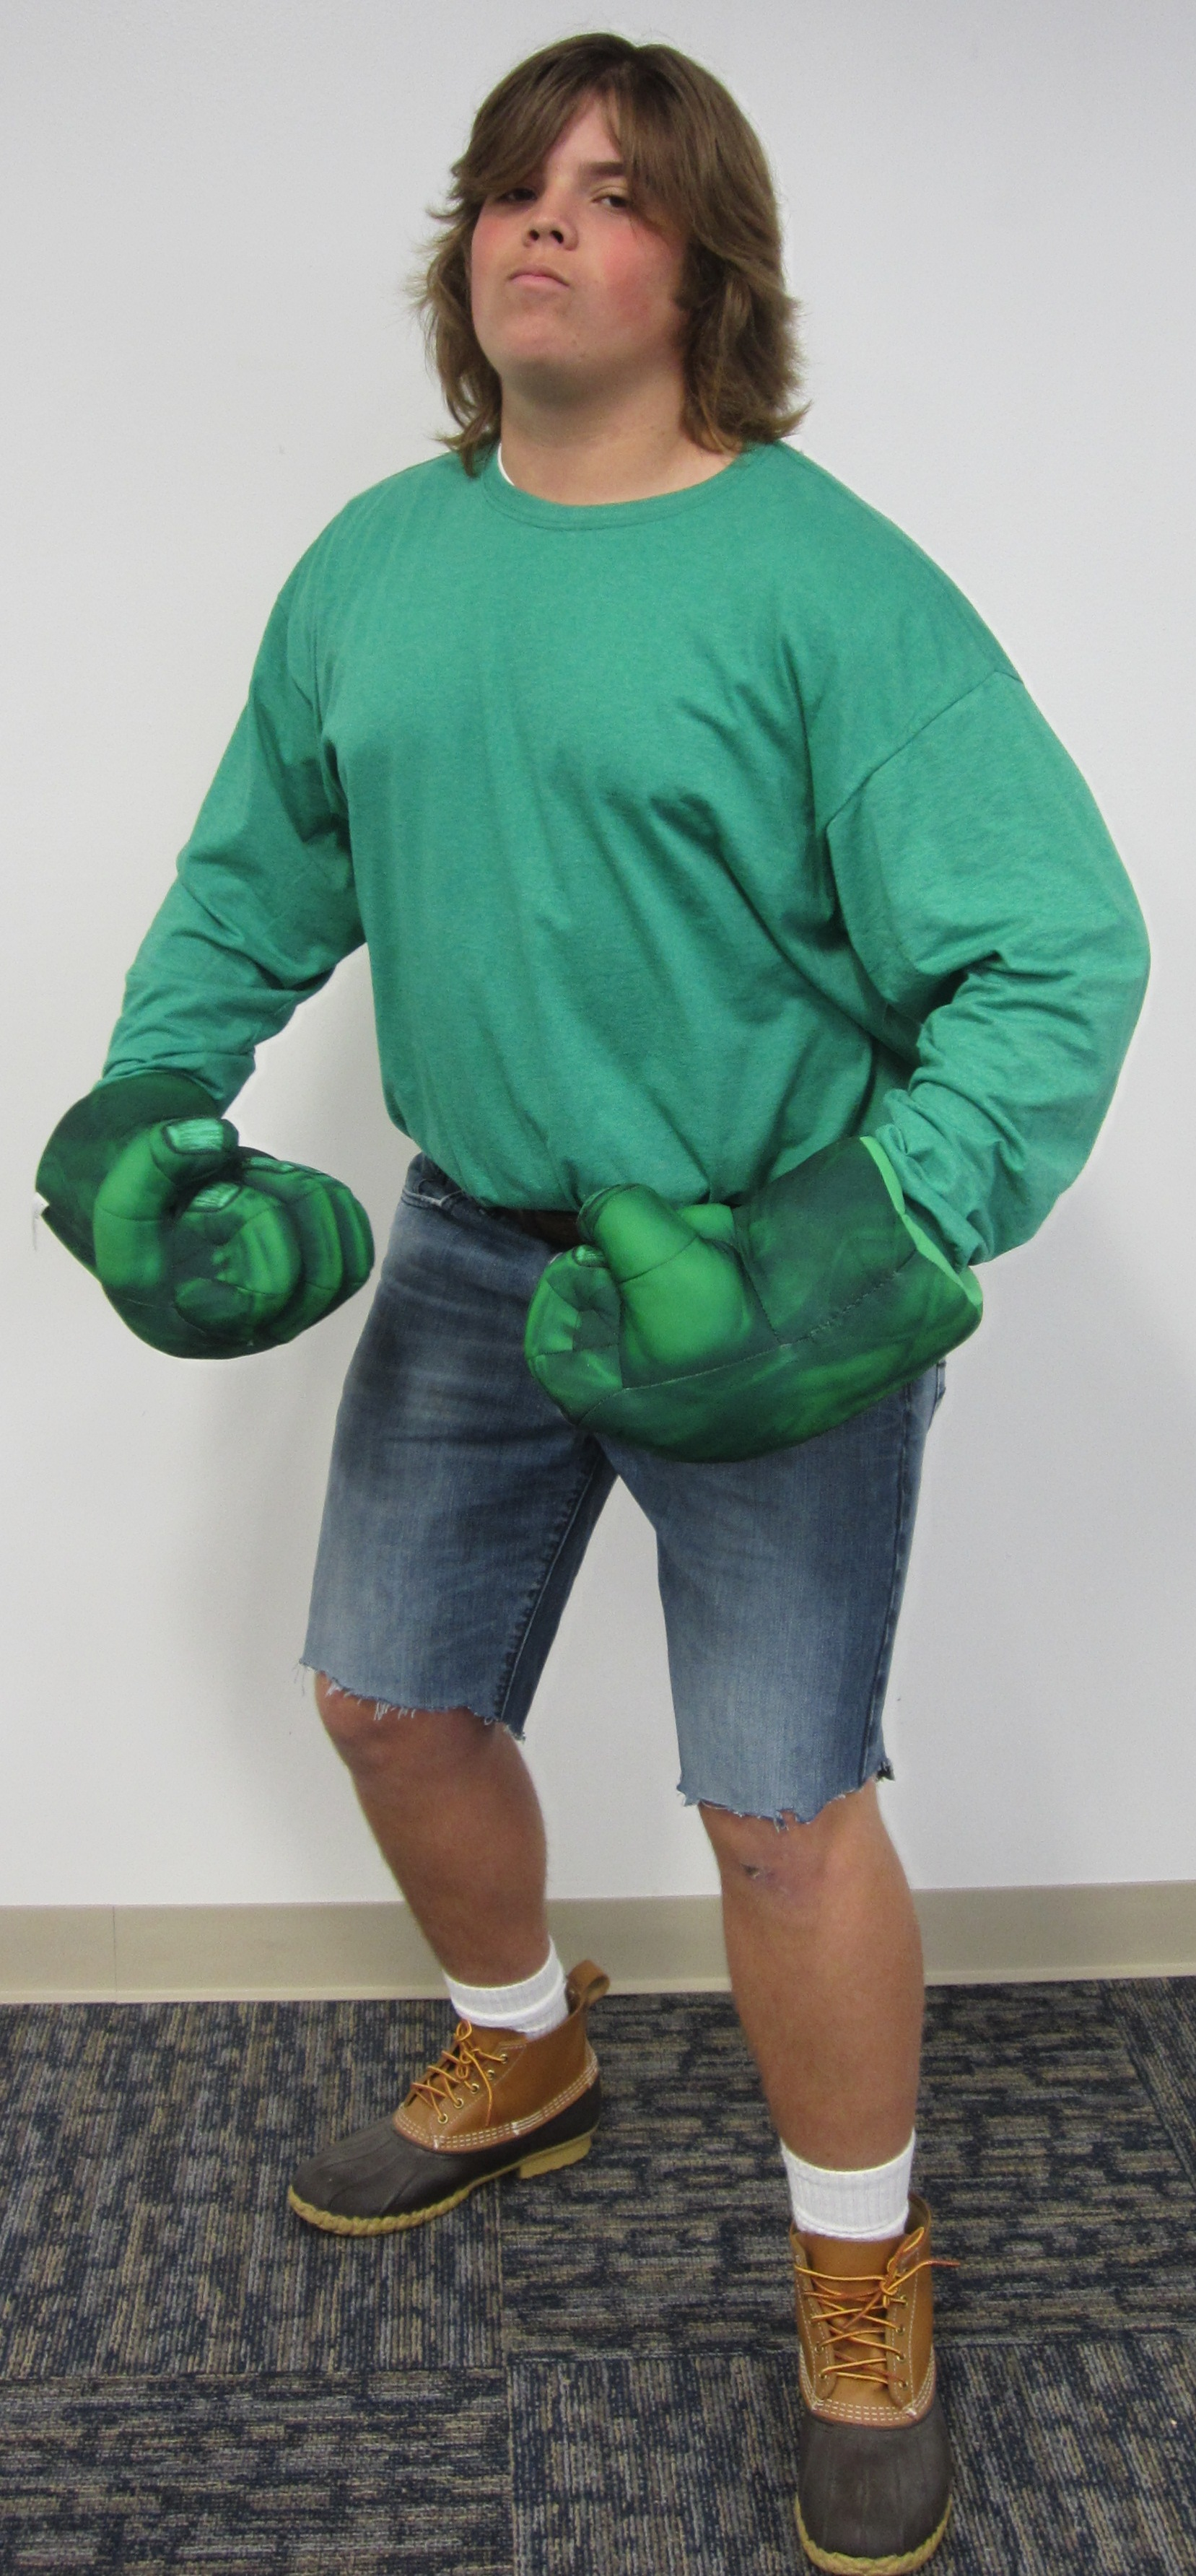 A student dressed as The Hulk